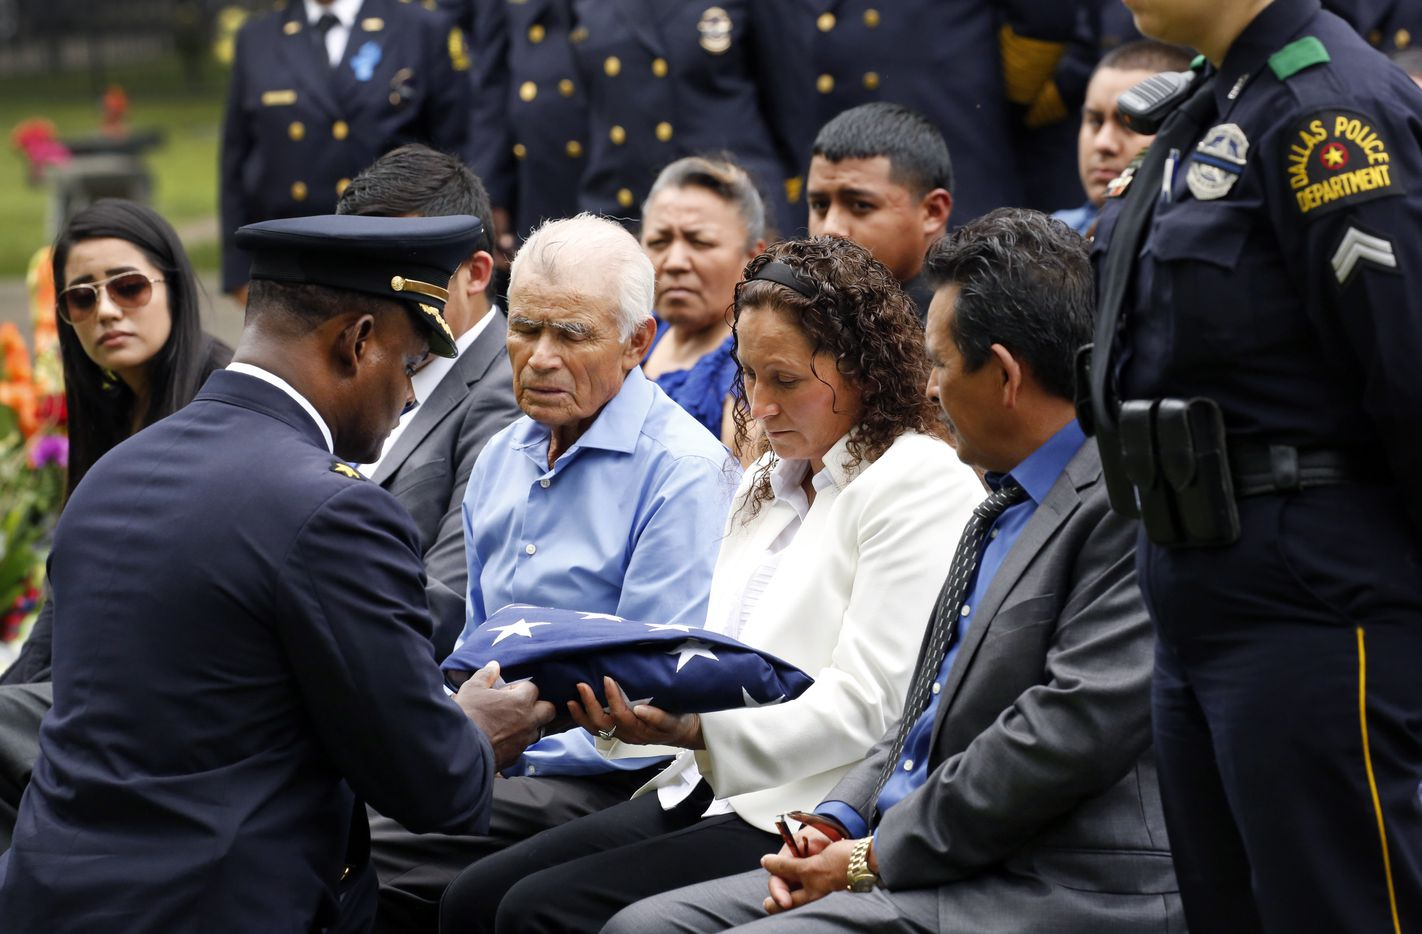 Dallas Police Deputy Chief Avery Moore kneels before and hands a folded U.S. flag to Juila Santander, mother of slain Dallas police officer Rogelio Santander, Jr., as he was laid to rest in the Garden of Honor at Restland Funeral Home and Cemetery in Dallas.